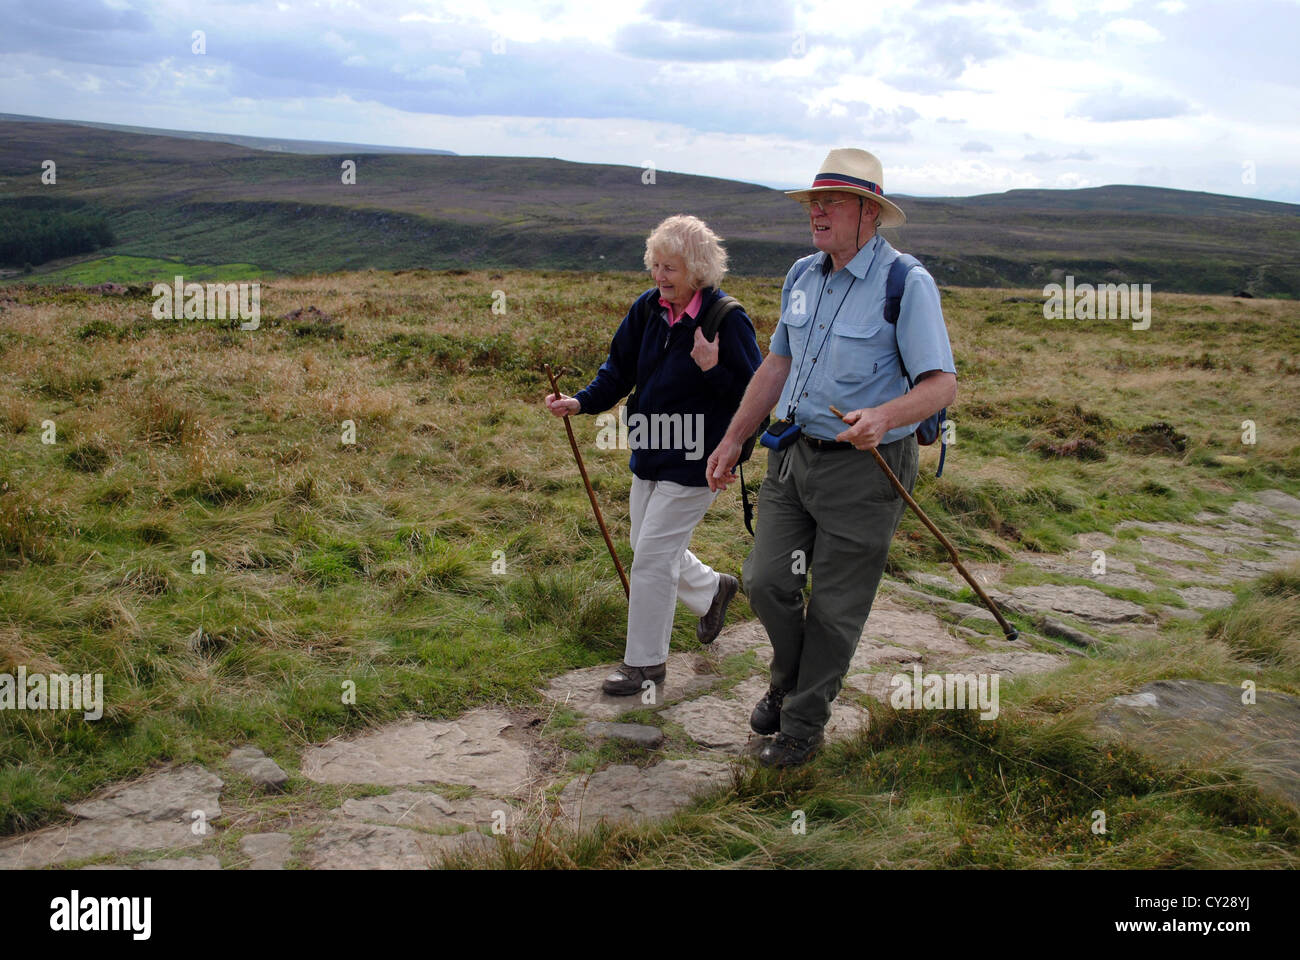 Husband and wife hiking at the Wainstones, cleveland hills. - Stock Image